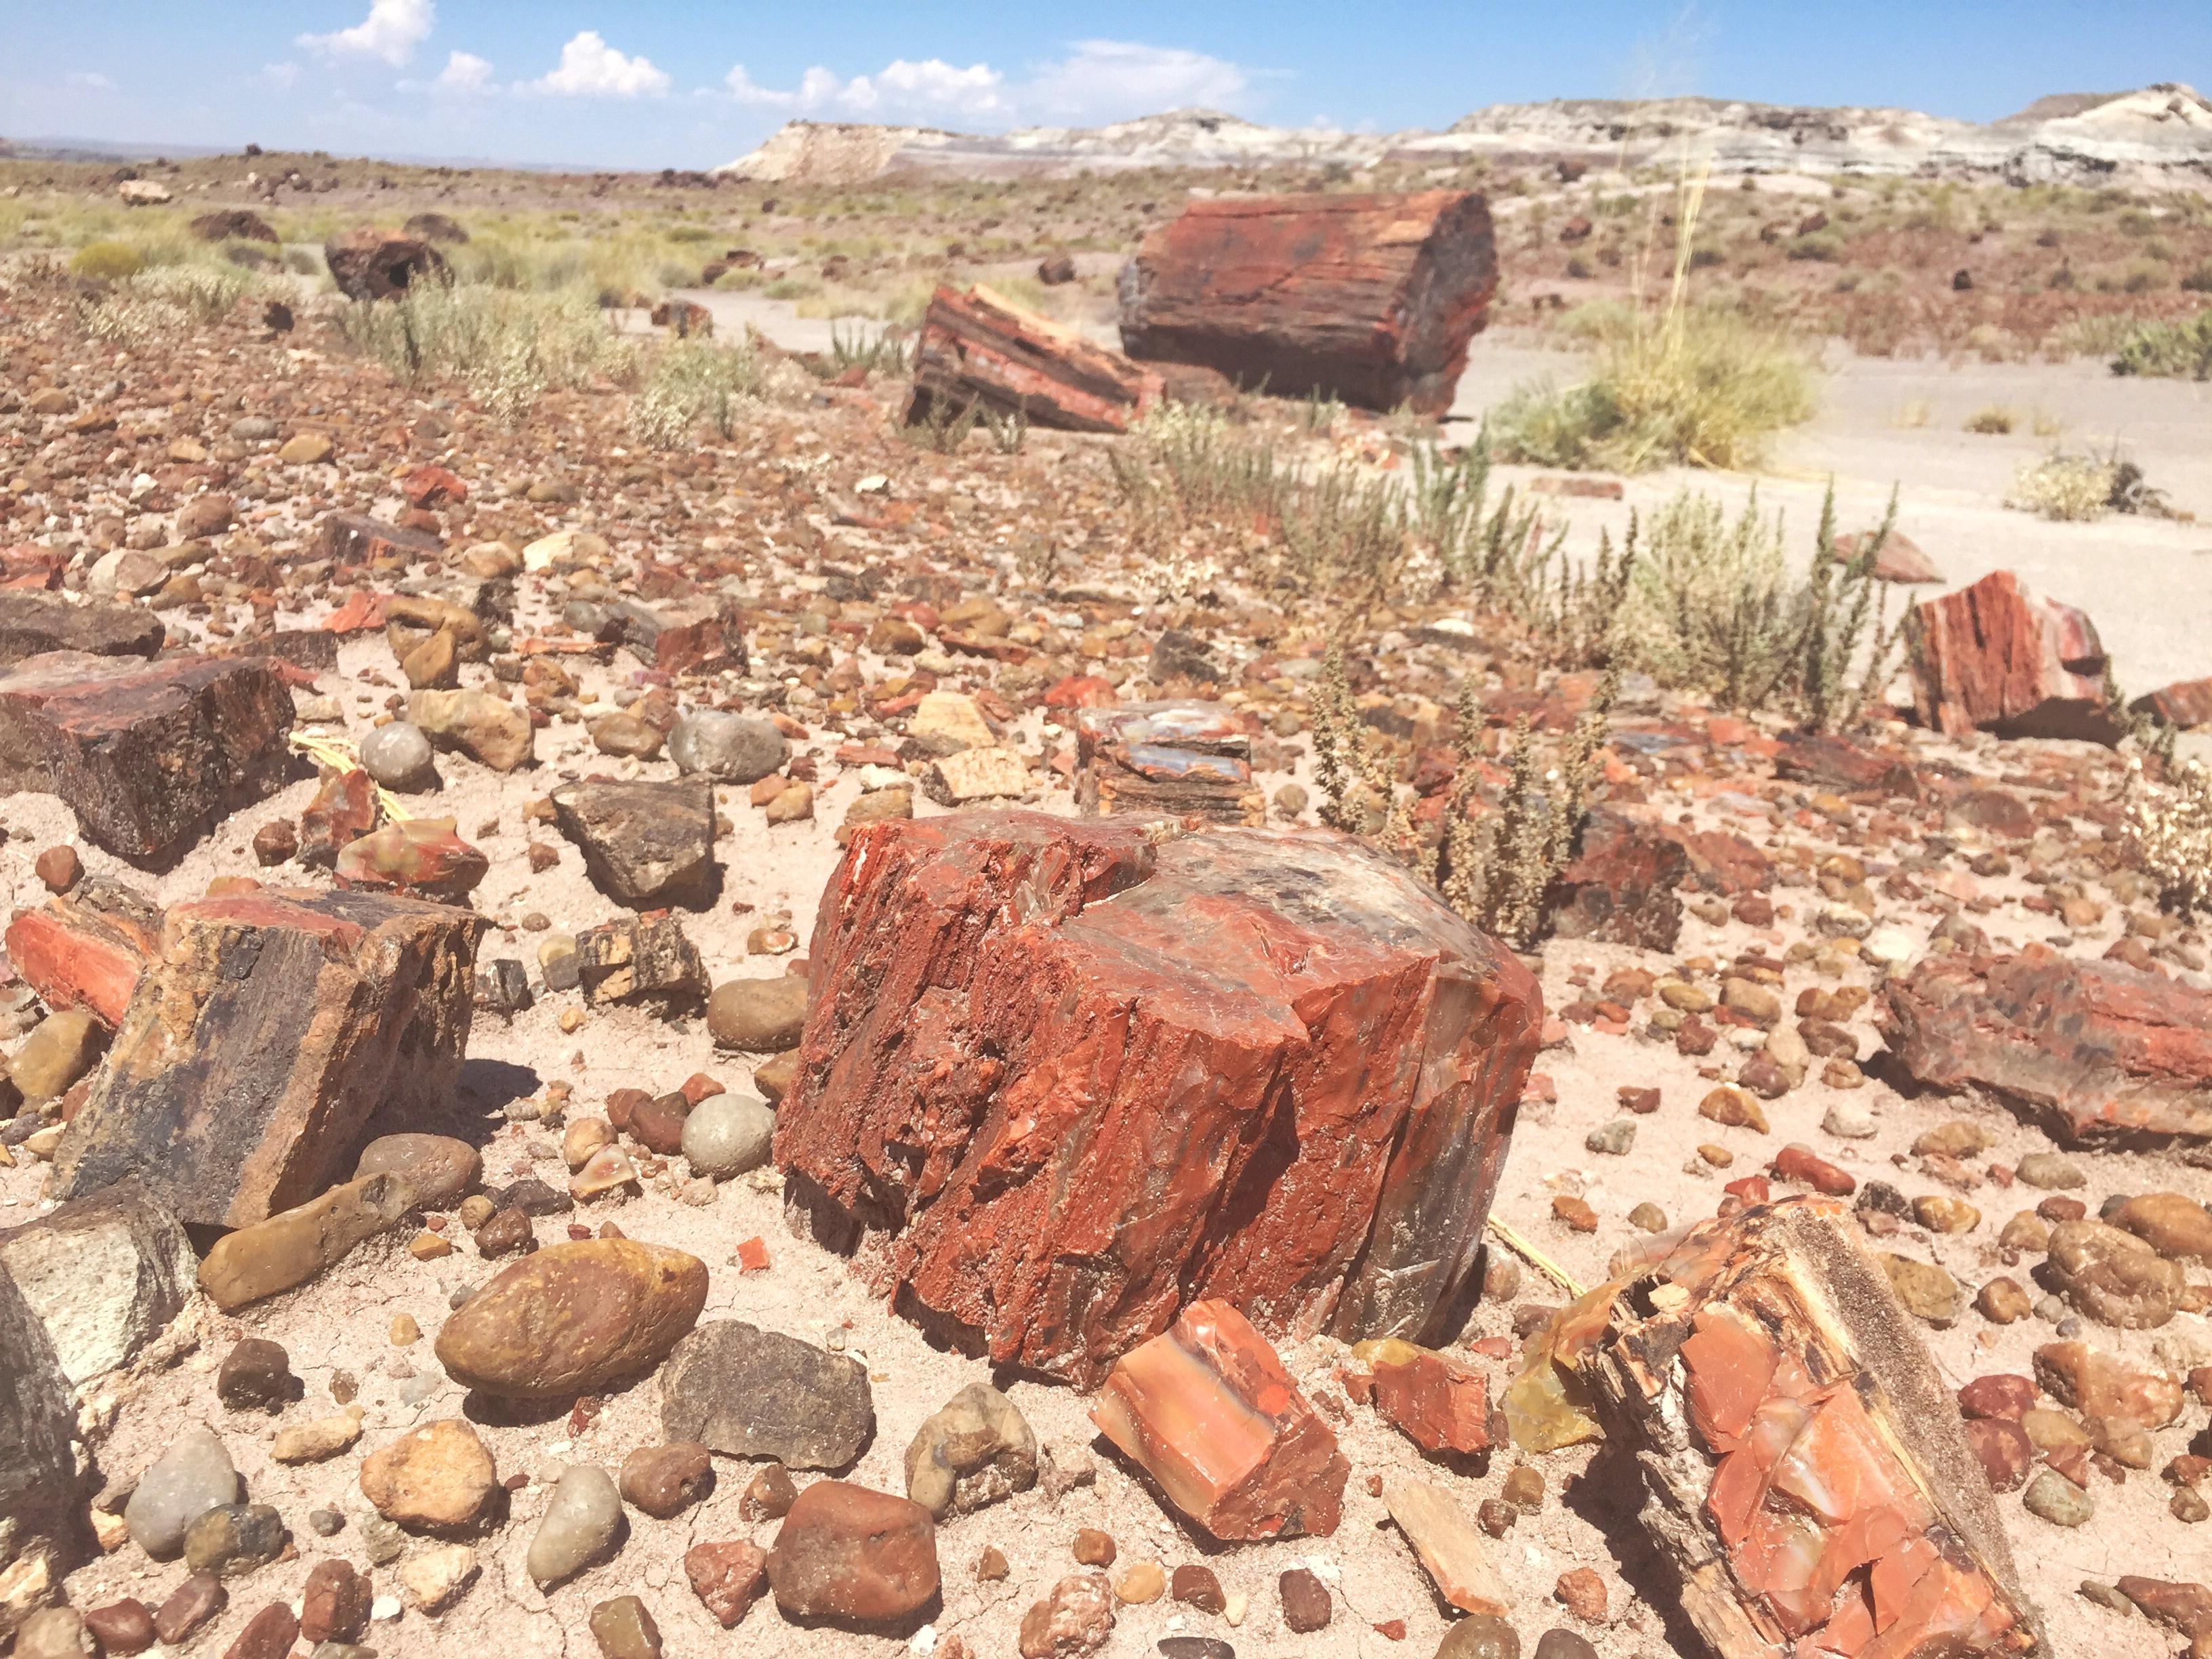 2. Park Road, Petrified Forest National Park